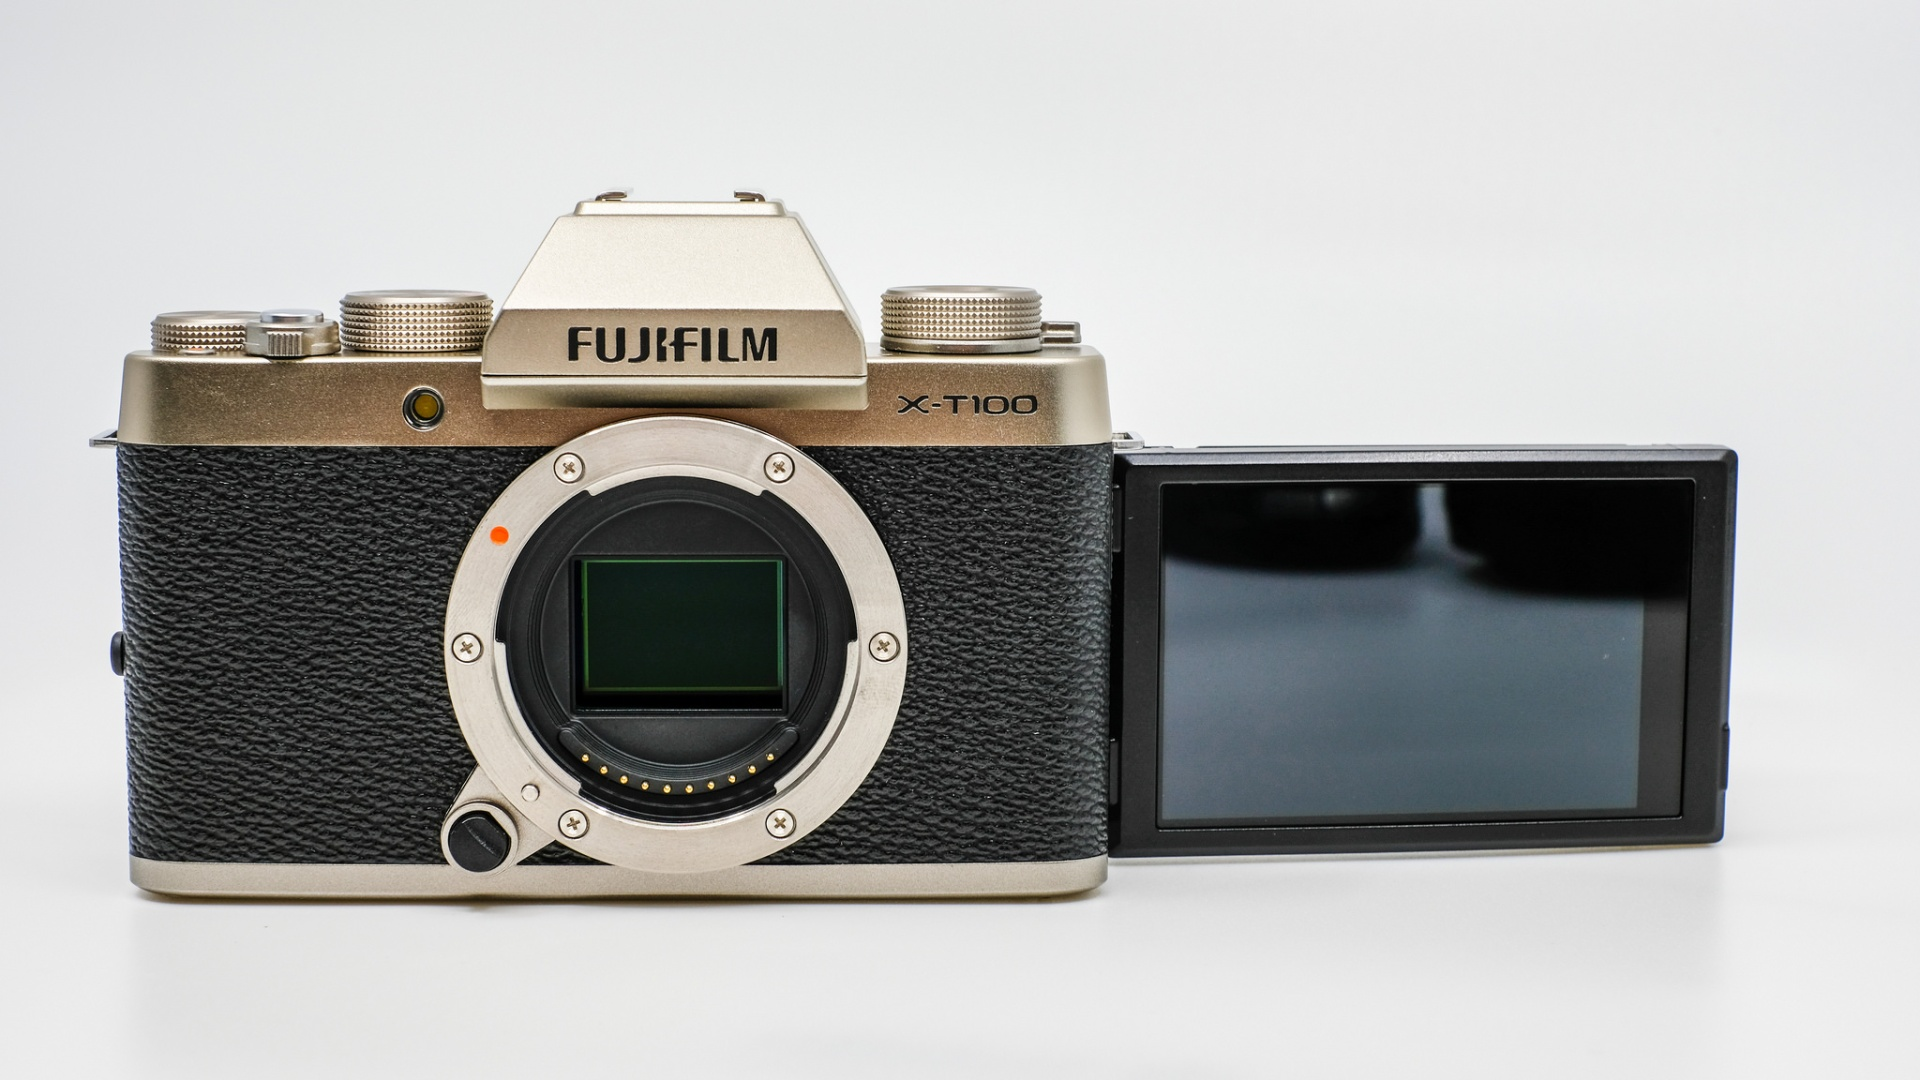 One of the most informative review of the Fujifilm X-T100